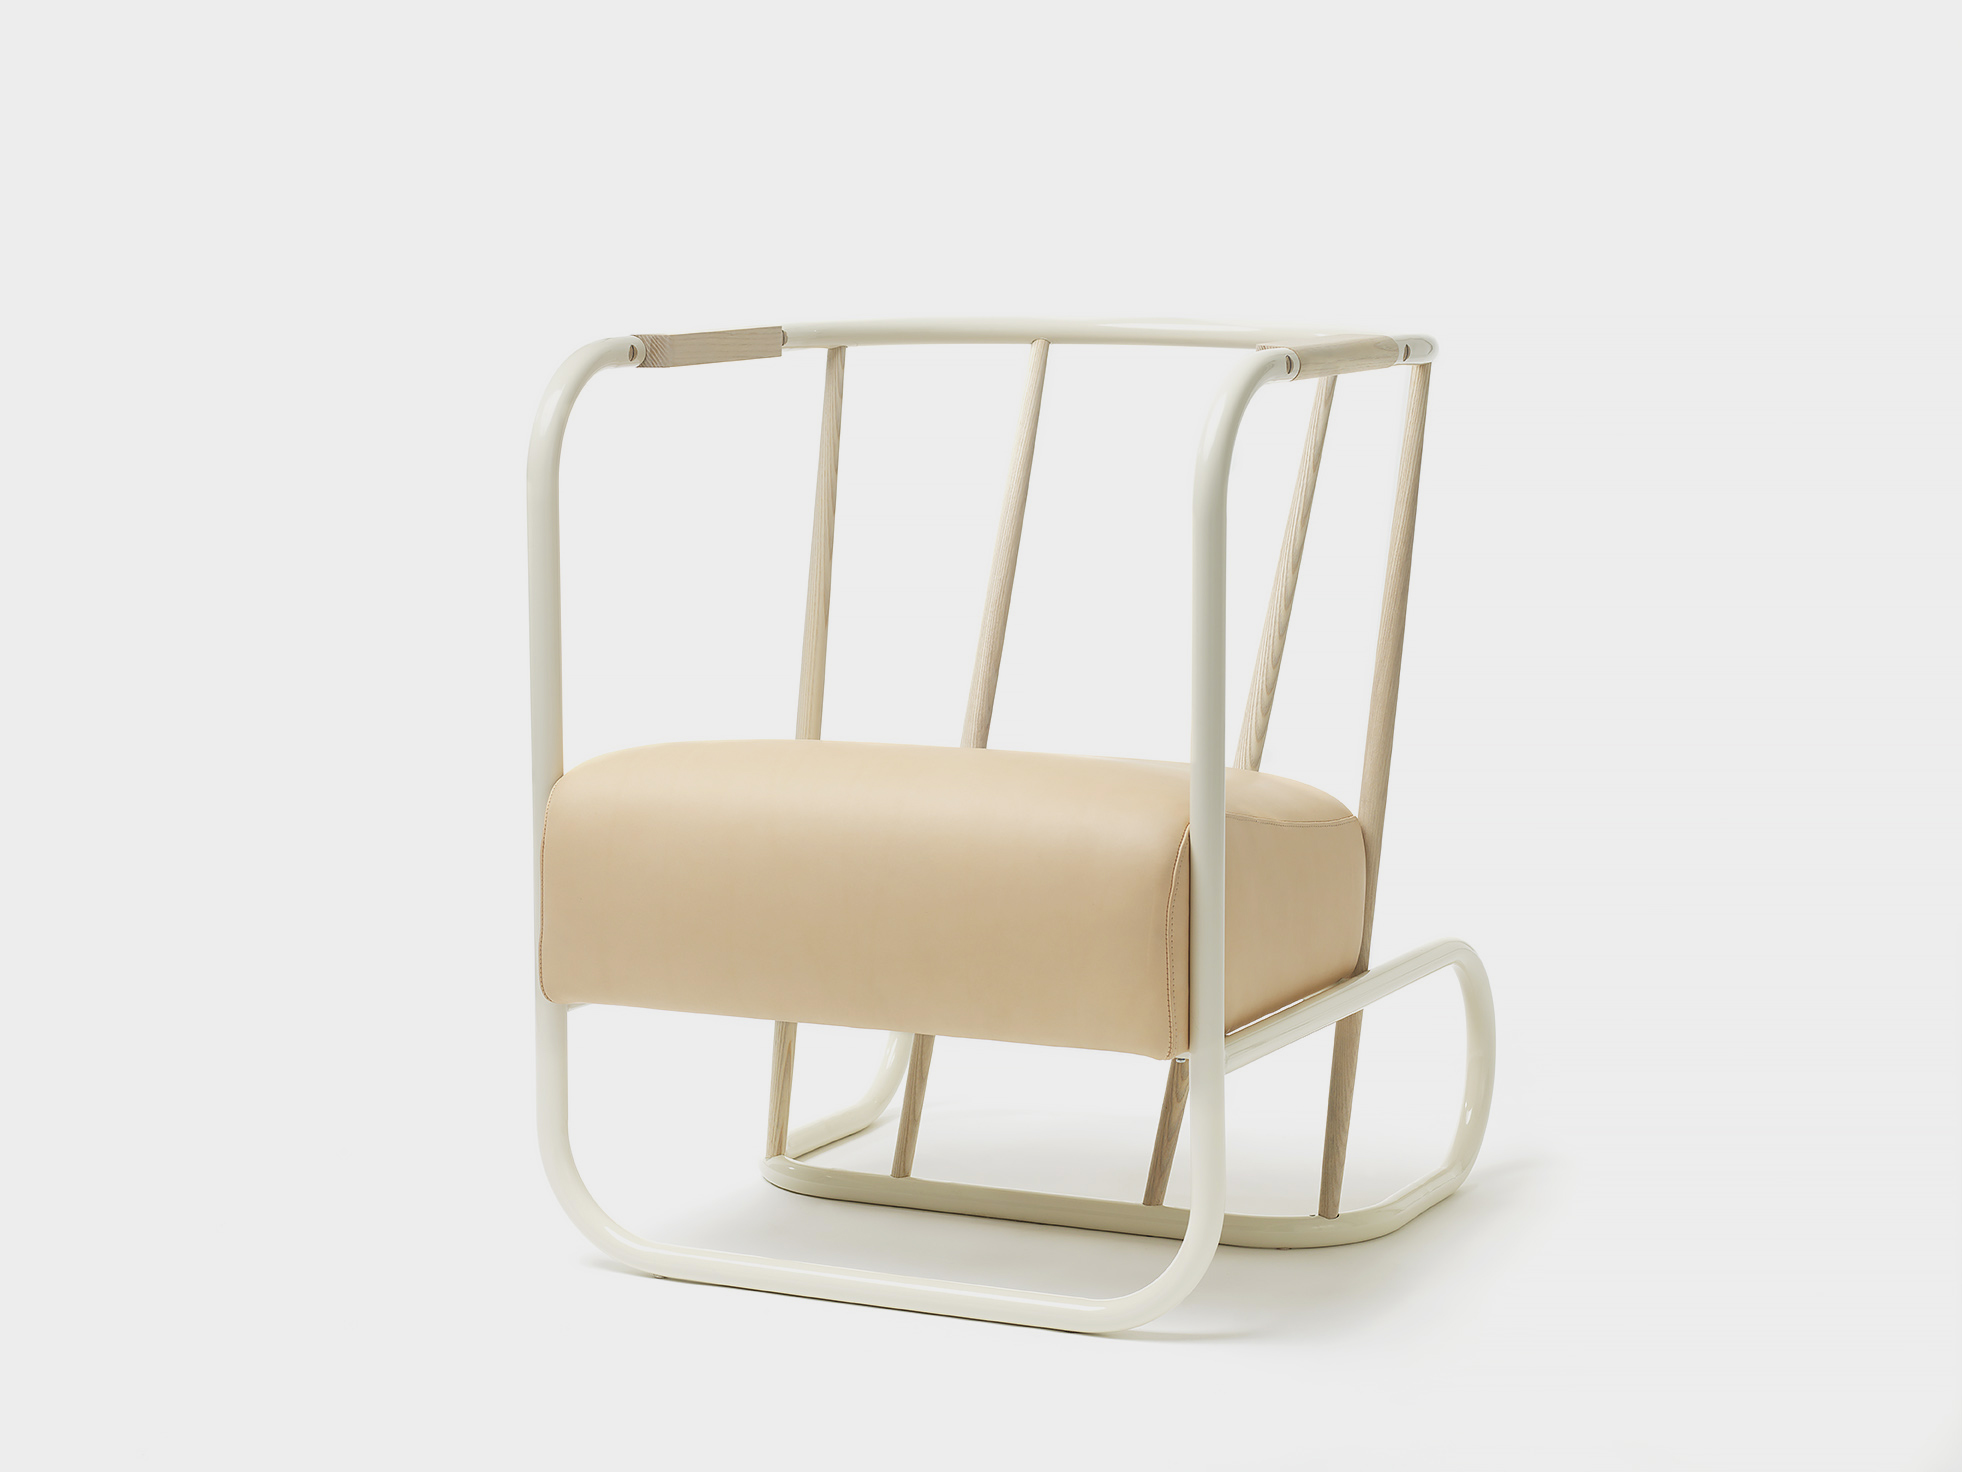 Untitled, armchair